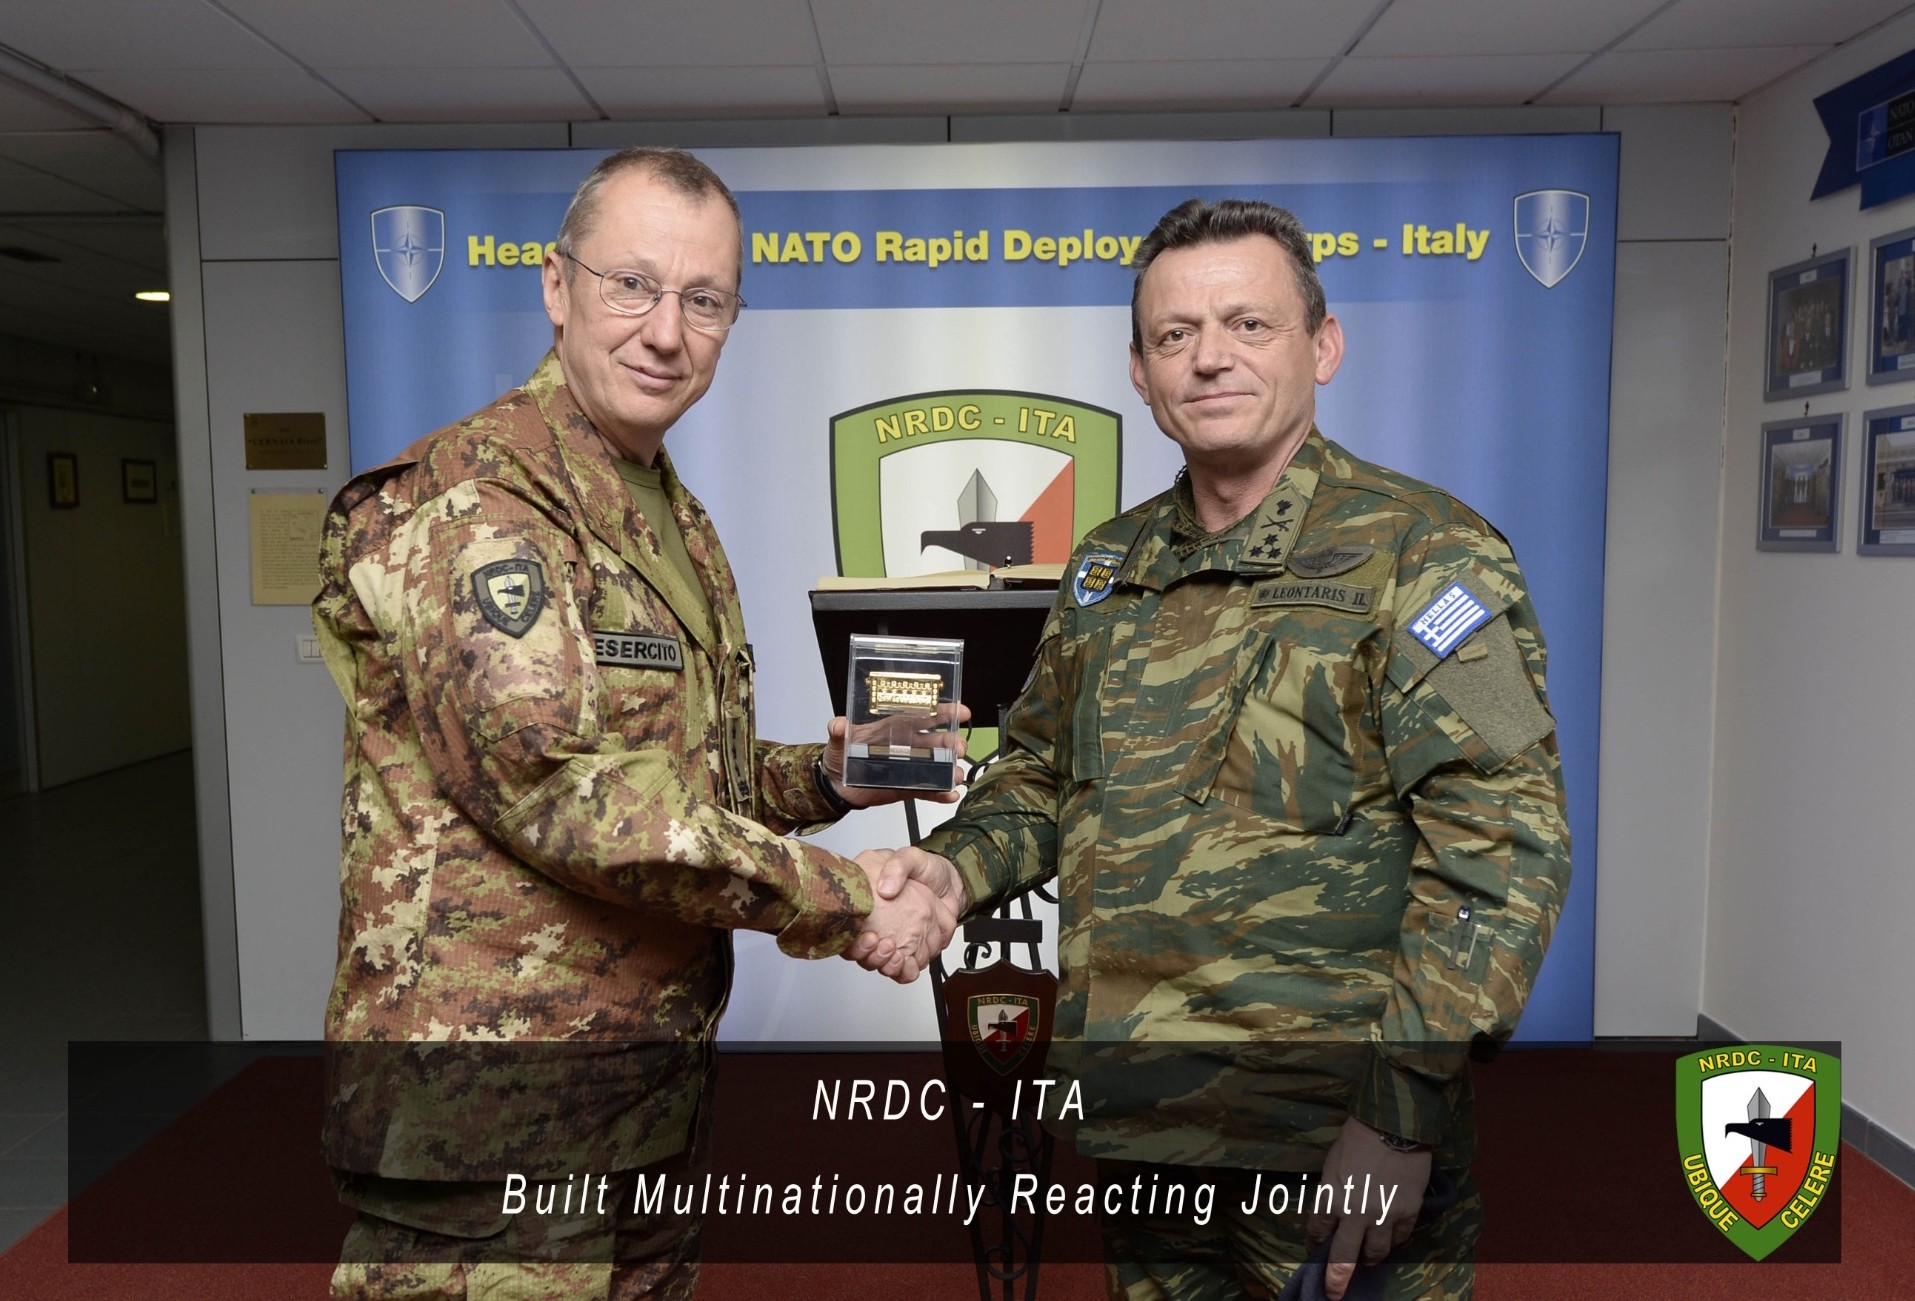 4th February - NRDC-ITA Commander receives the visit of NRDC-GR Commander.